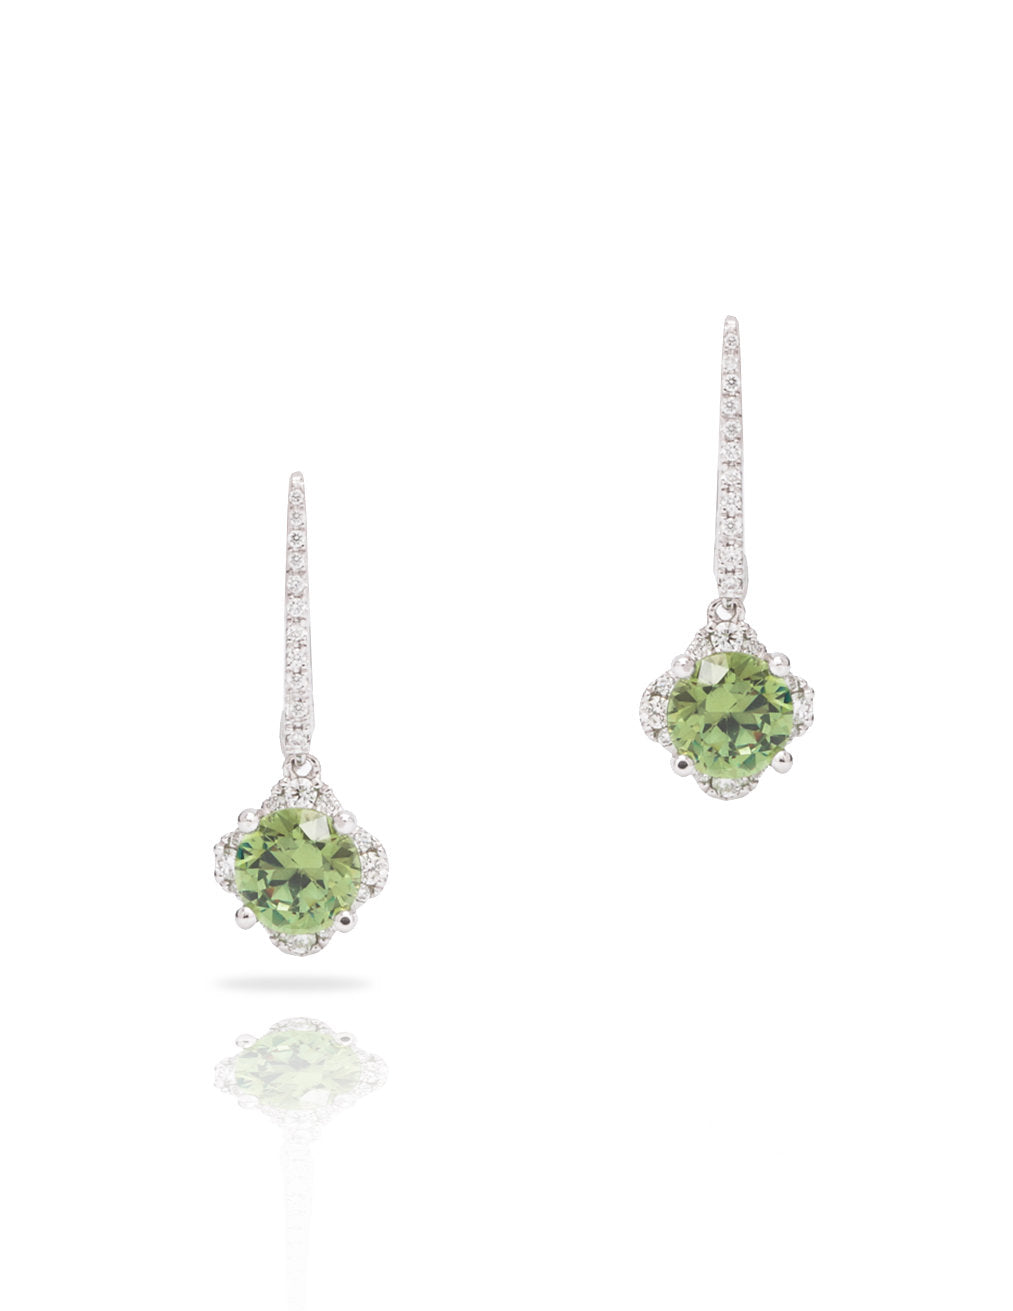 Demantoid Garnet and Diamond Drop Earrings - Charles Koll Jewellers